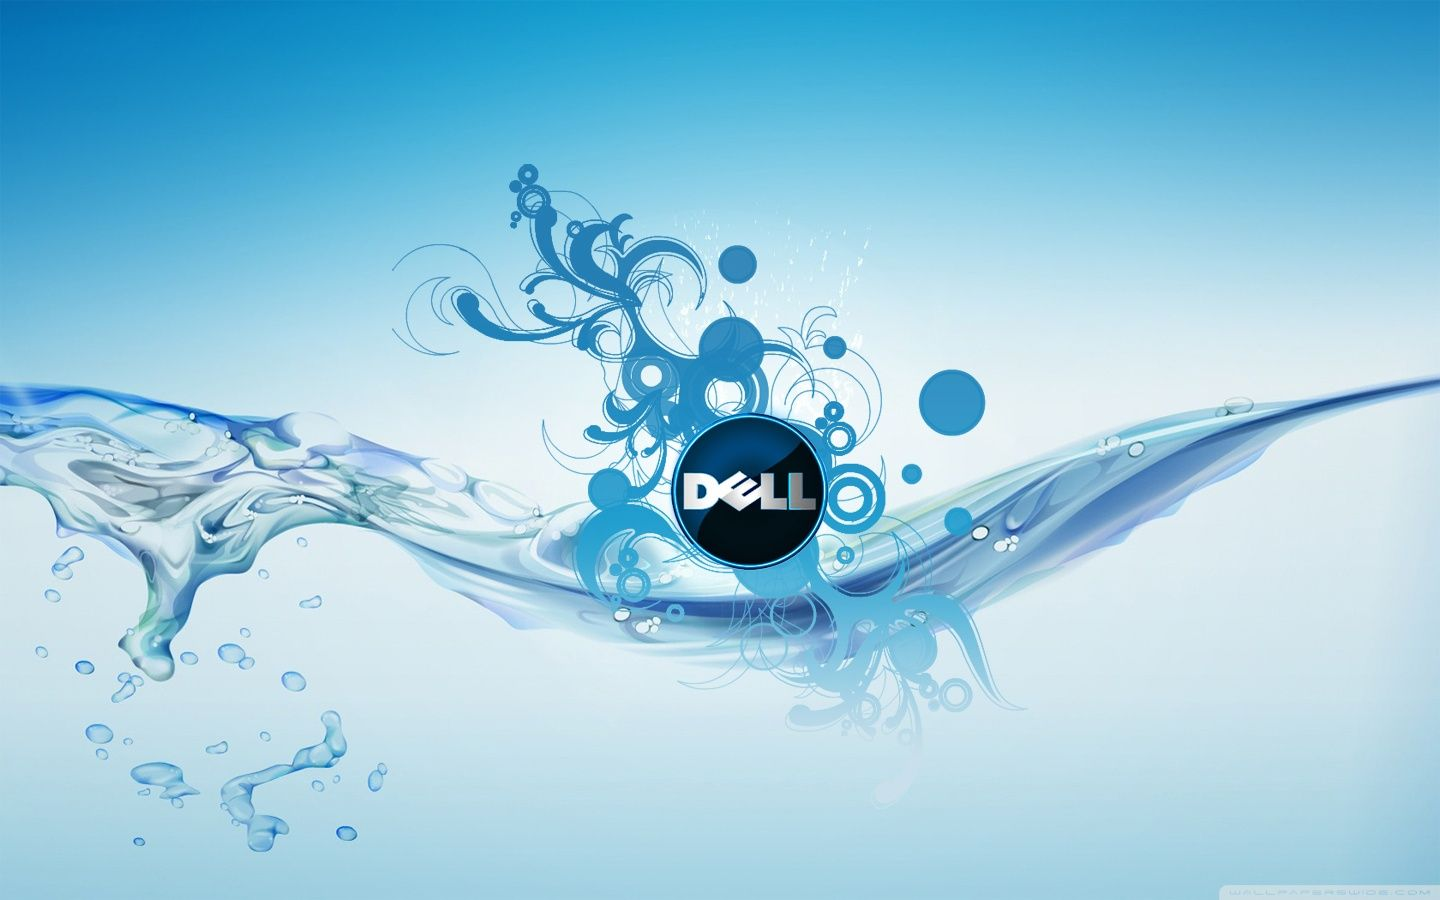 desktop wallpaper dell 38 - photo #33